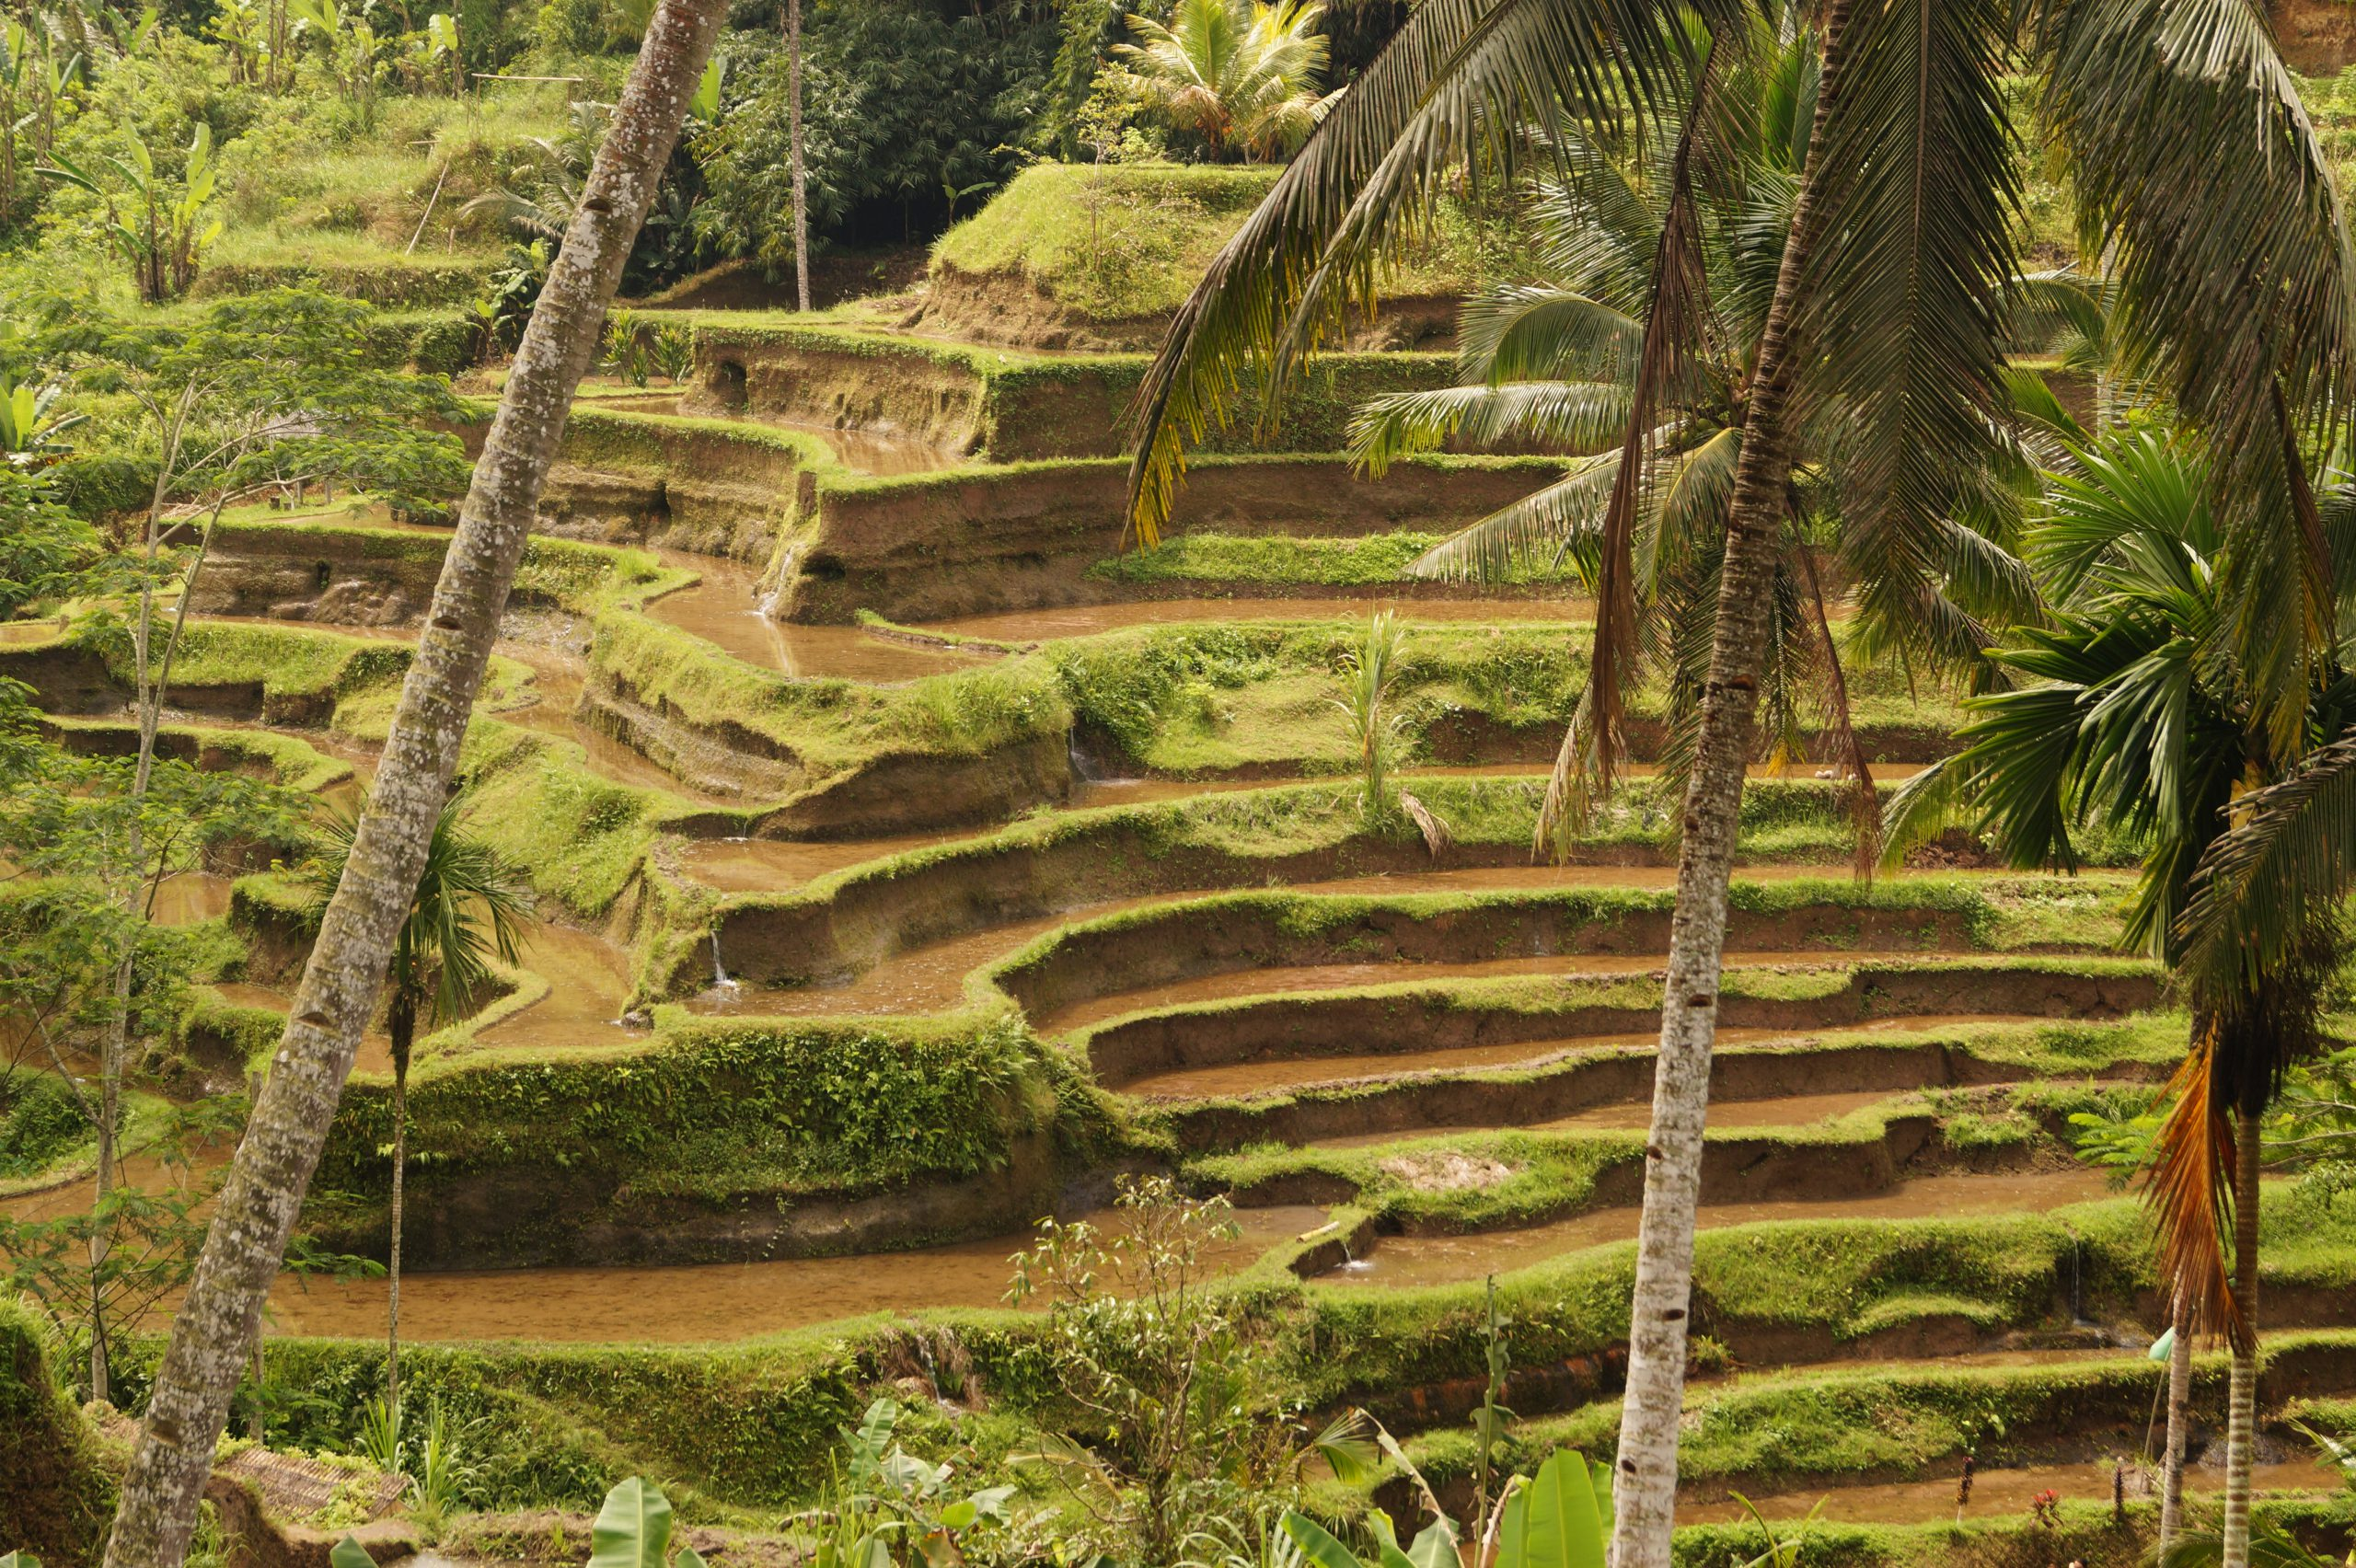 Bali Que ver en Ubud Arrozales de Tegalalang scaled - Top 5 places to see in Ubud in one day